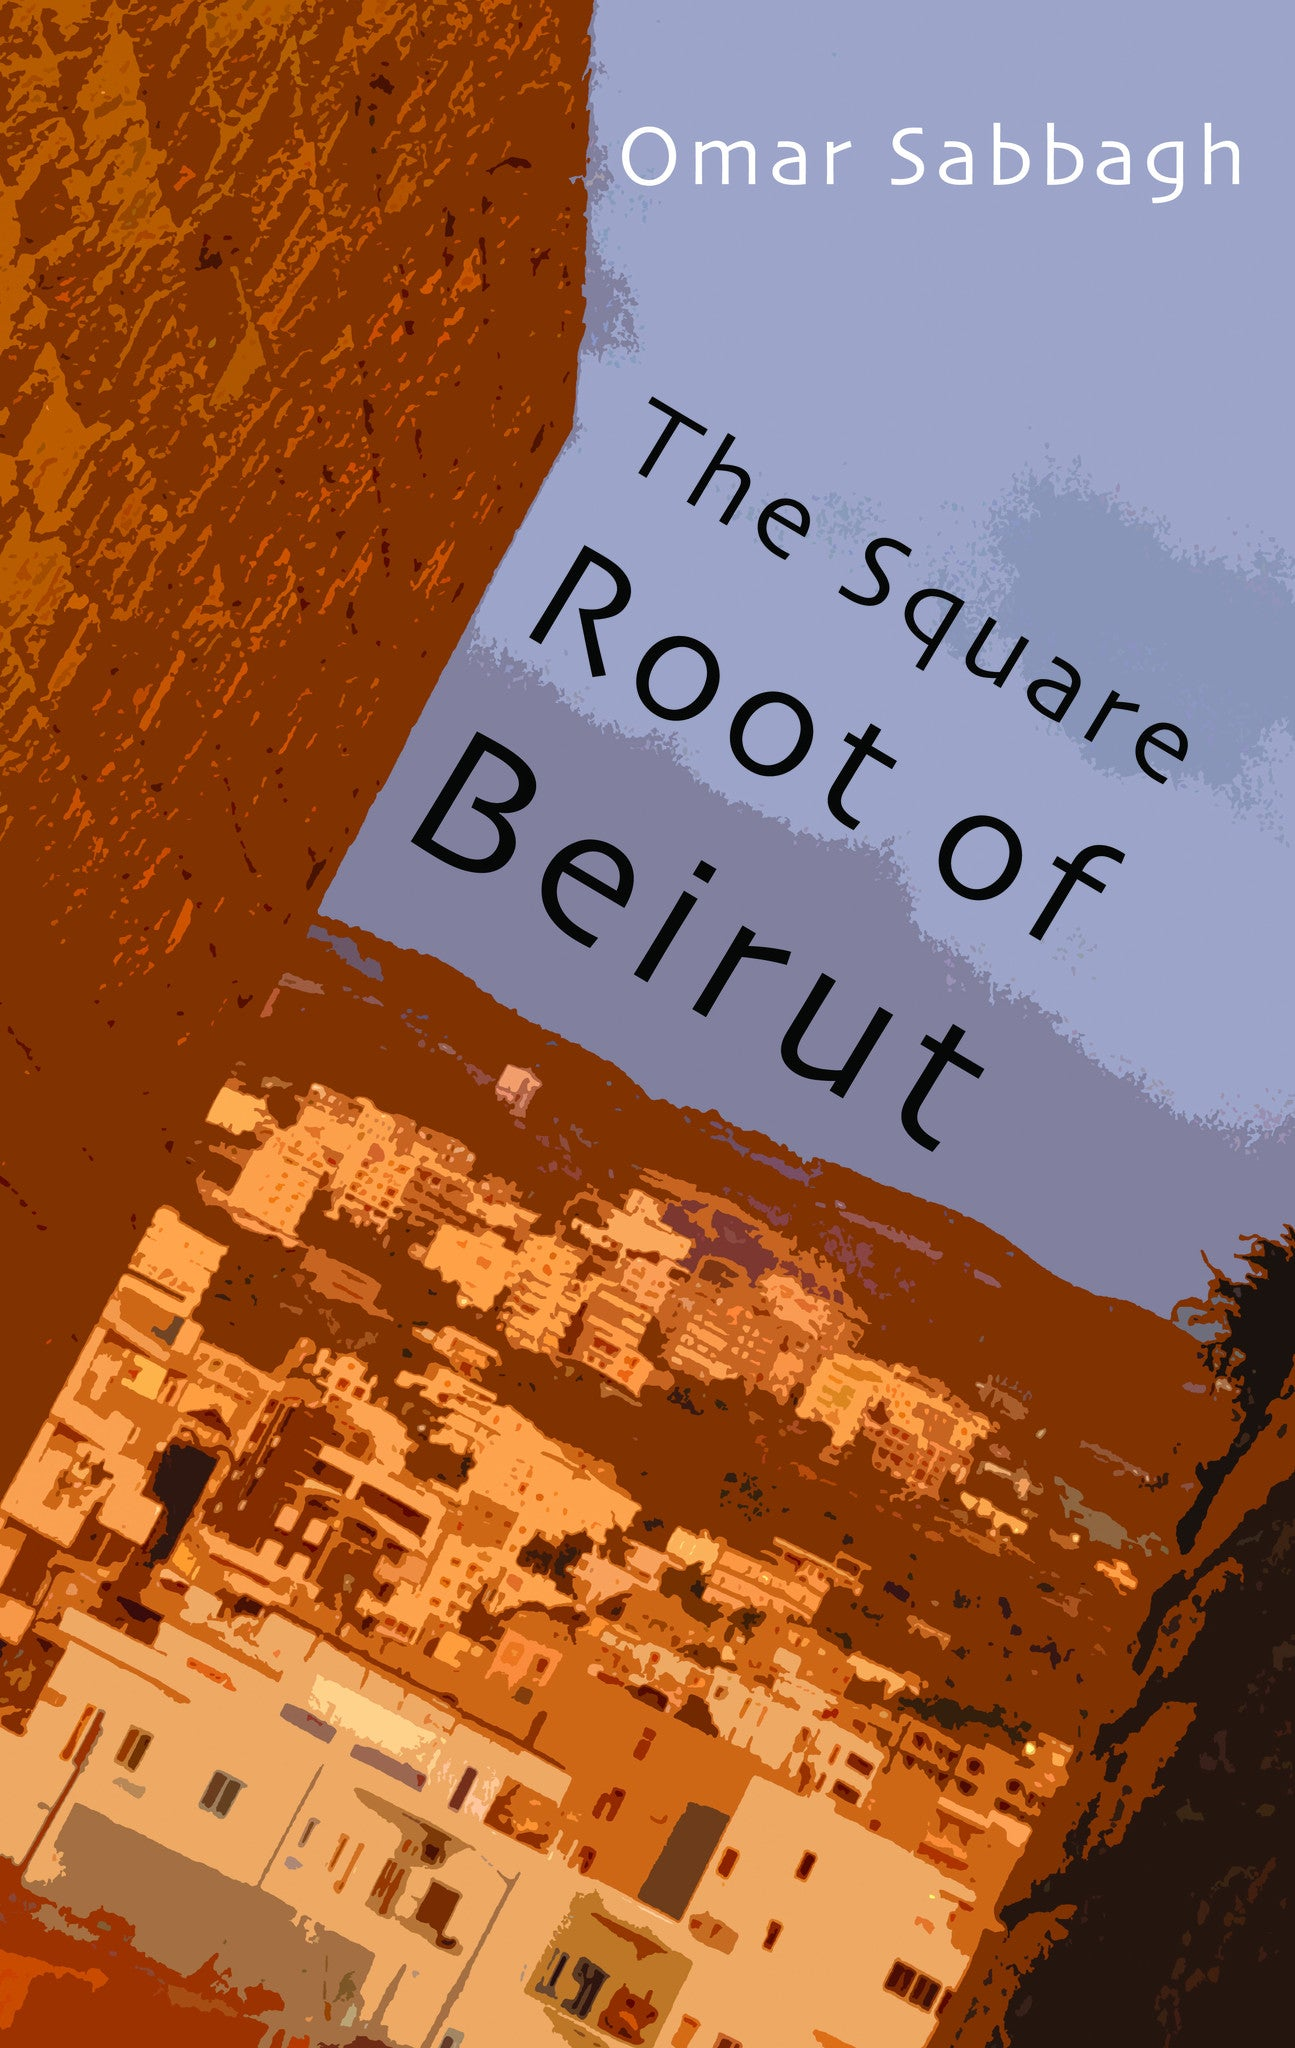 The Square Root of Beirut